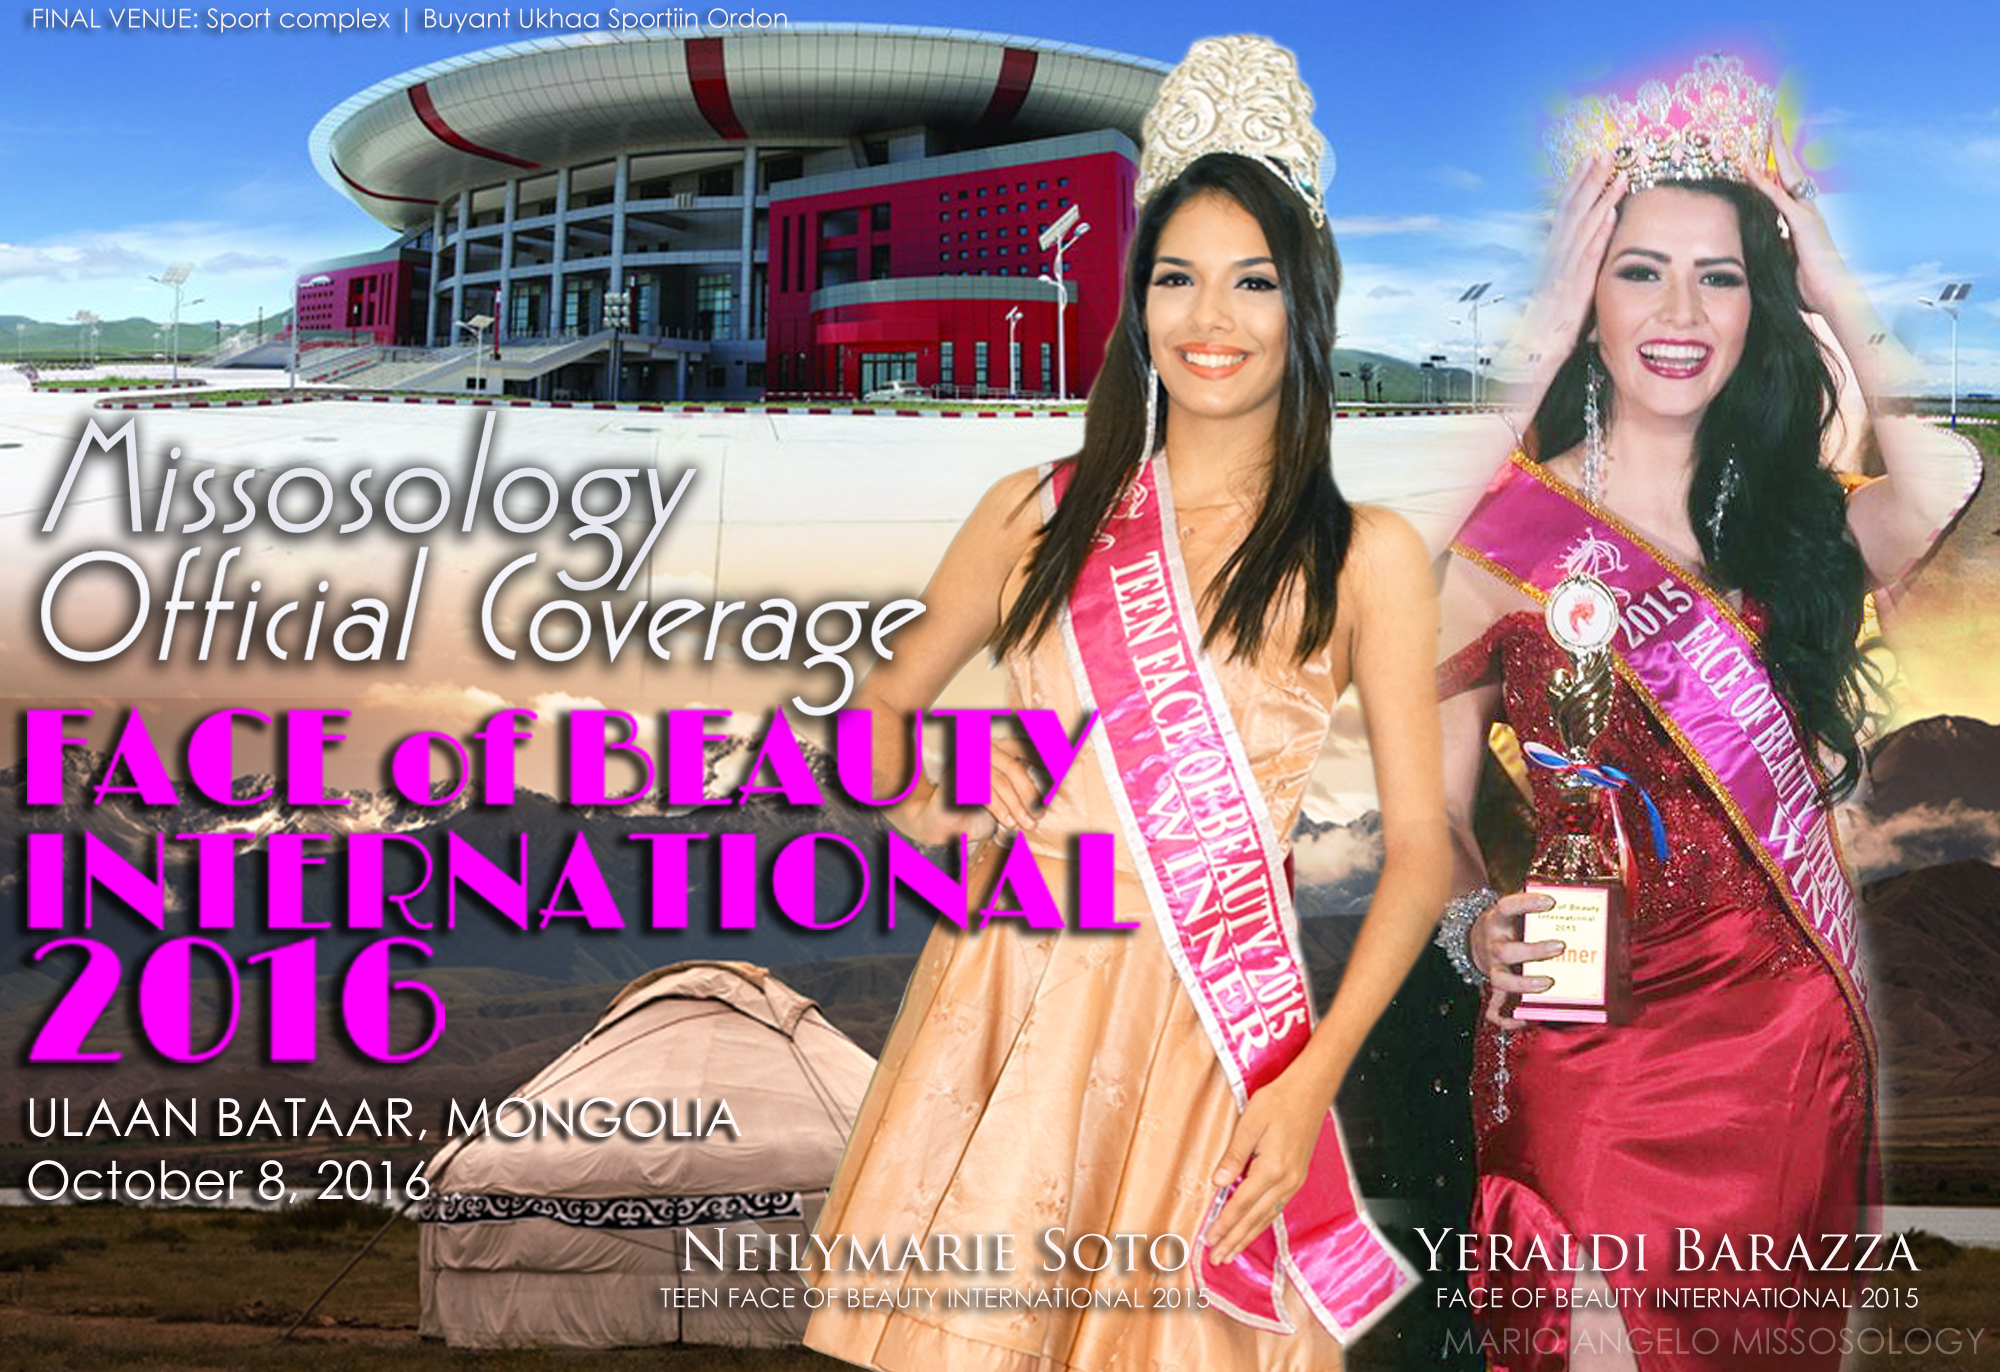 Face of Beauty International 2016